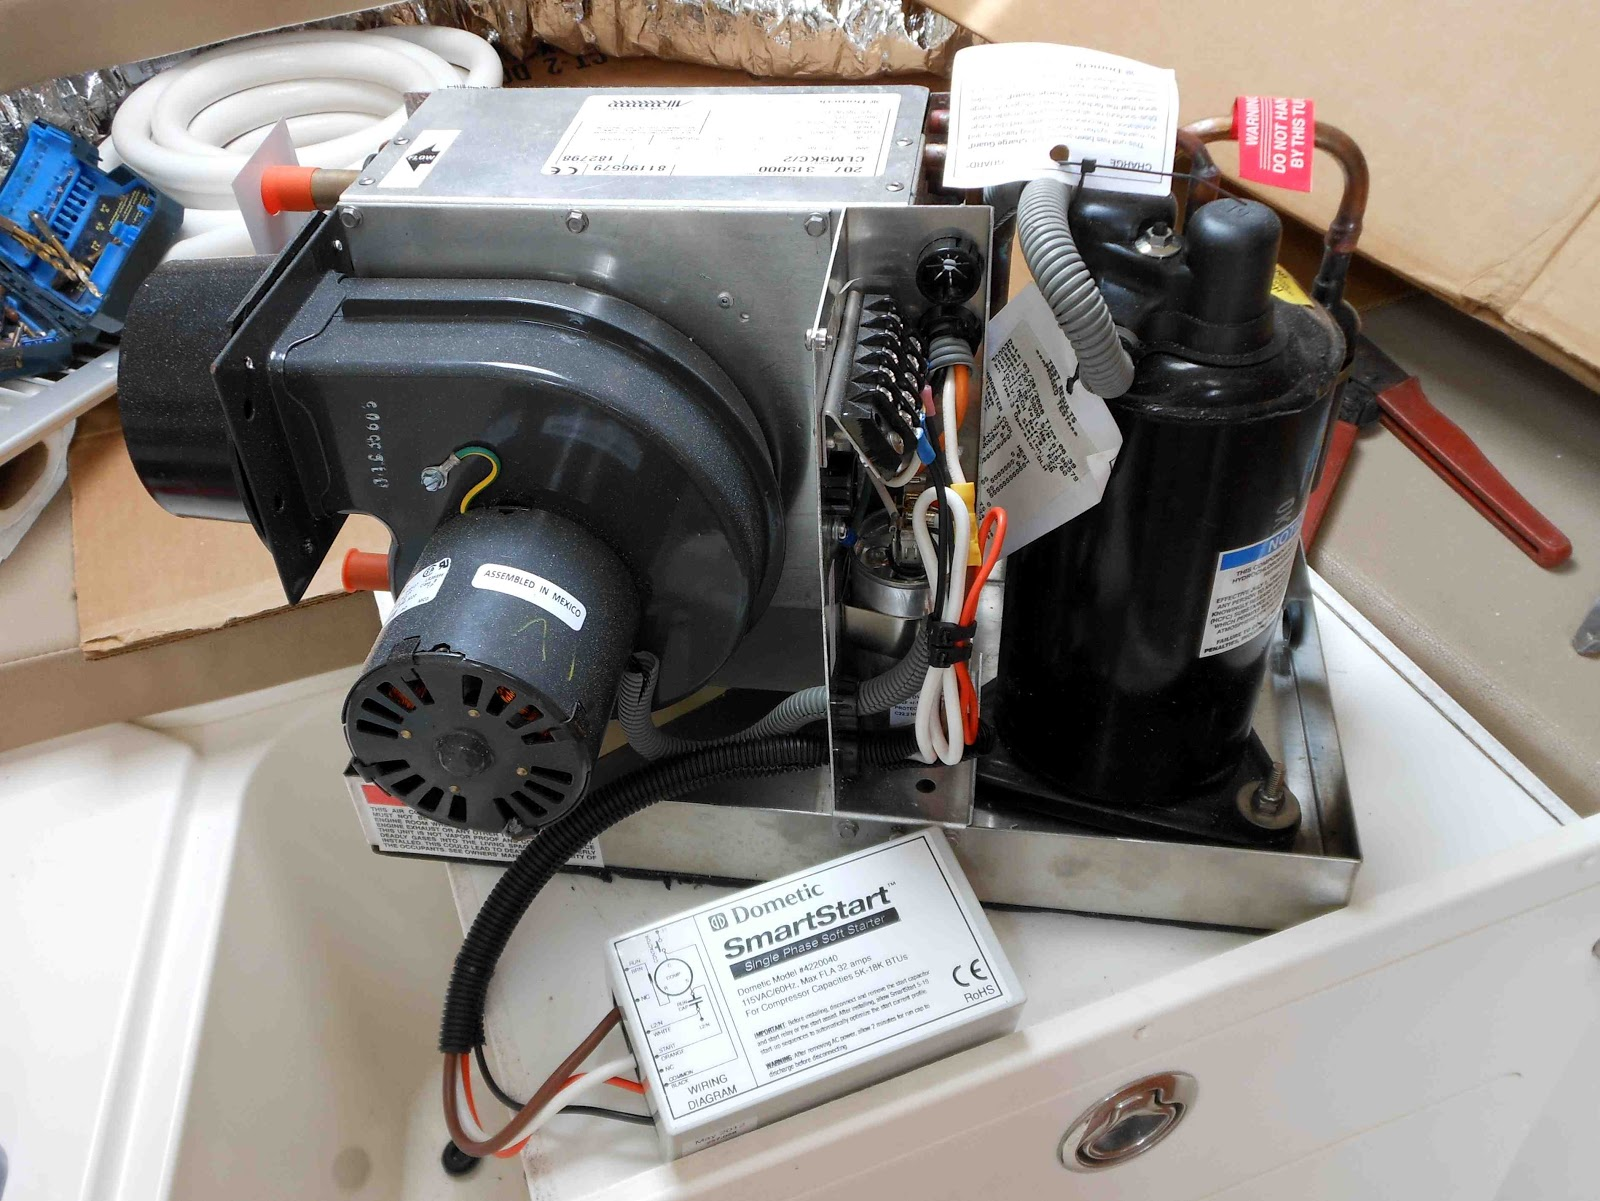 The Marine Installers Rant Chilling Me Softly Cruisair Ac Wiring Diagram This Small Box Learns How Compressor Starts And Optimizes Starting Cycle To Reduce Surge In Larger Air Conditioning